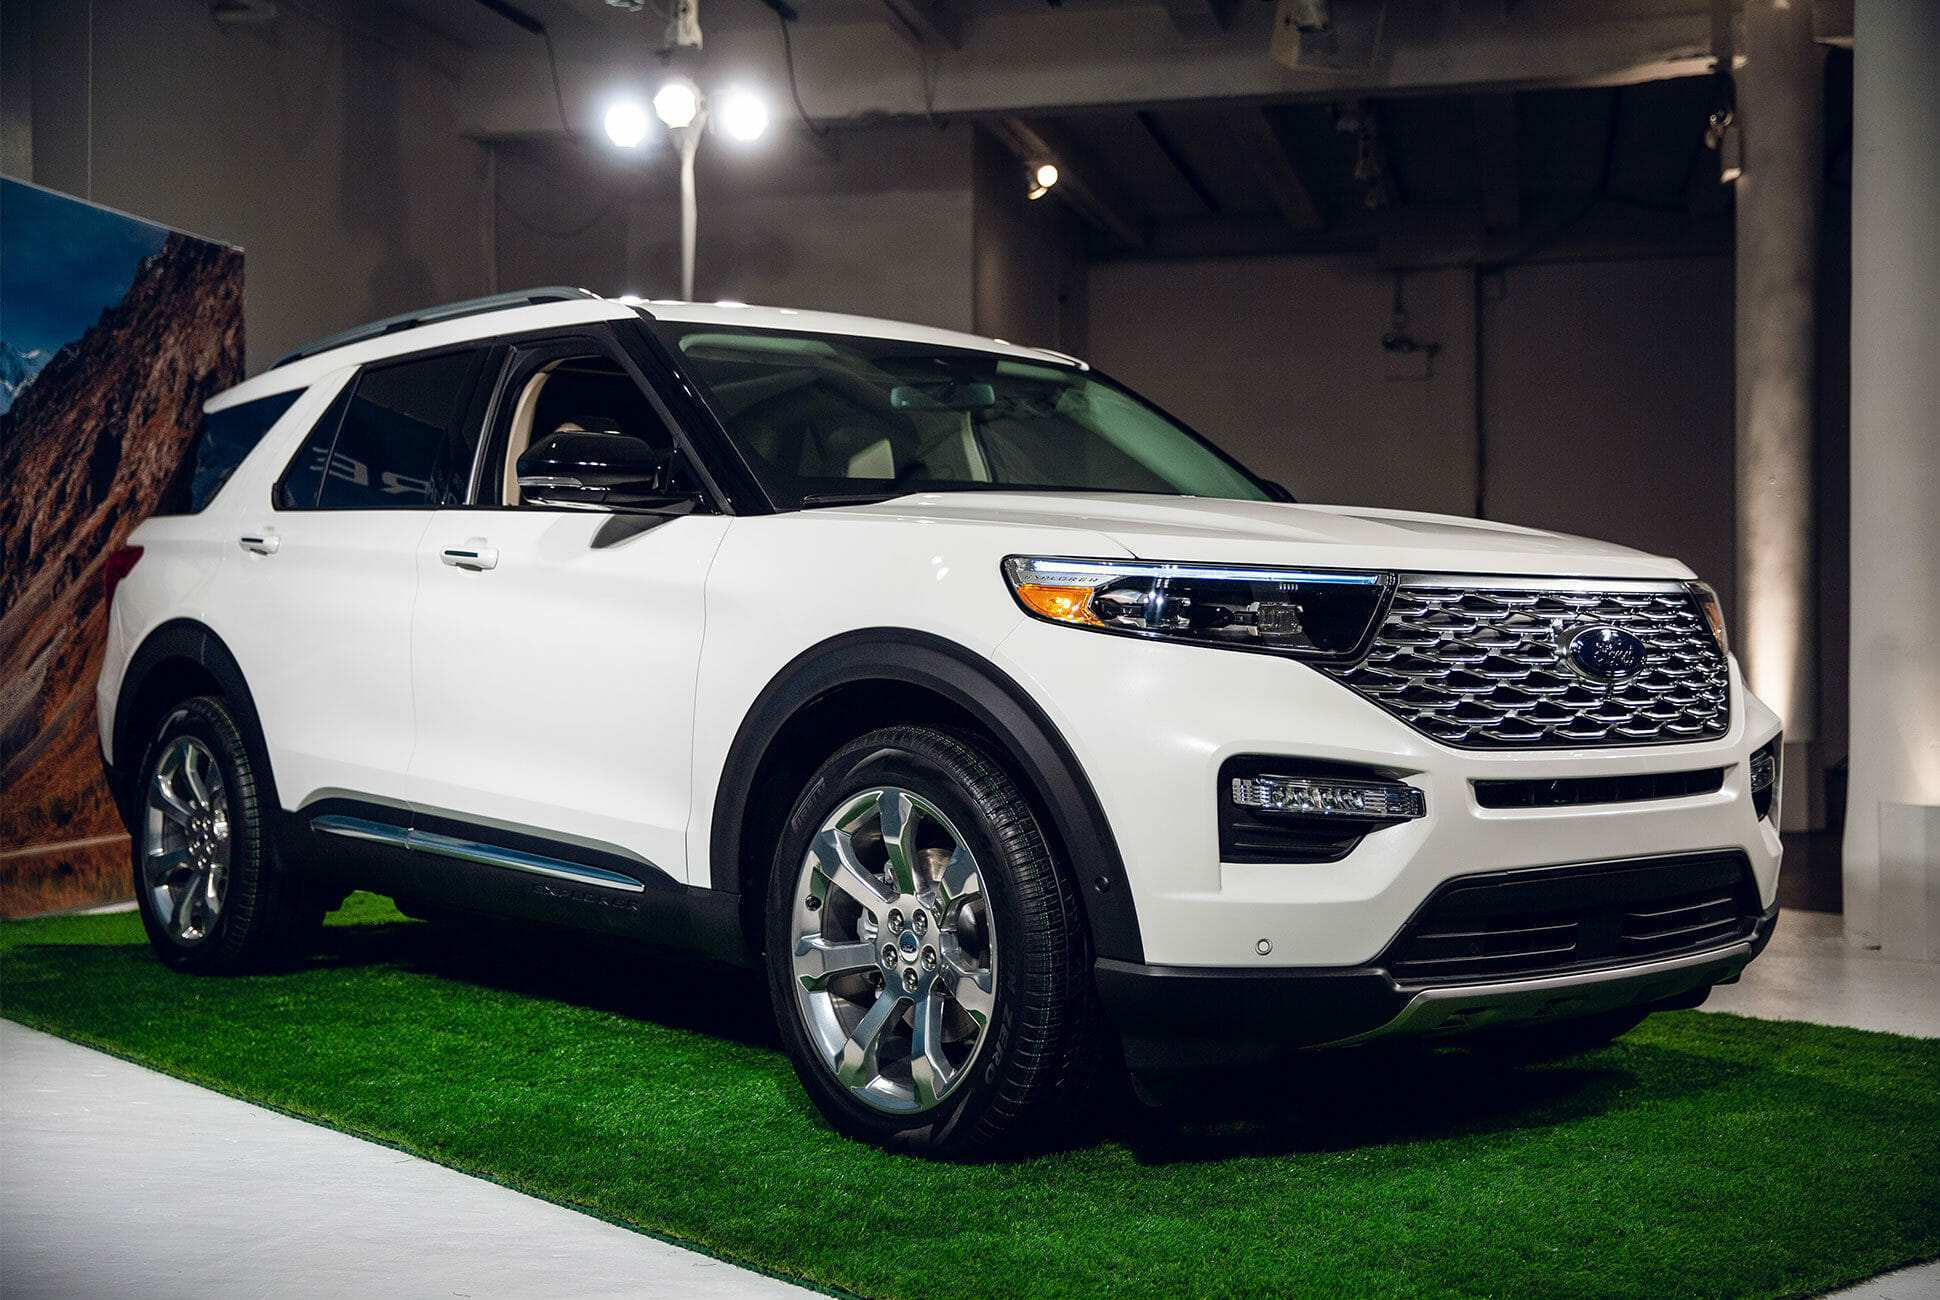 12 Concept of 2020 Ford Explorer Sports New Concept for 2020 Ford Explorer Sports